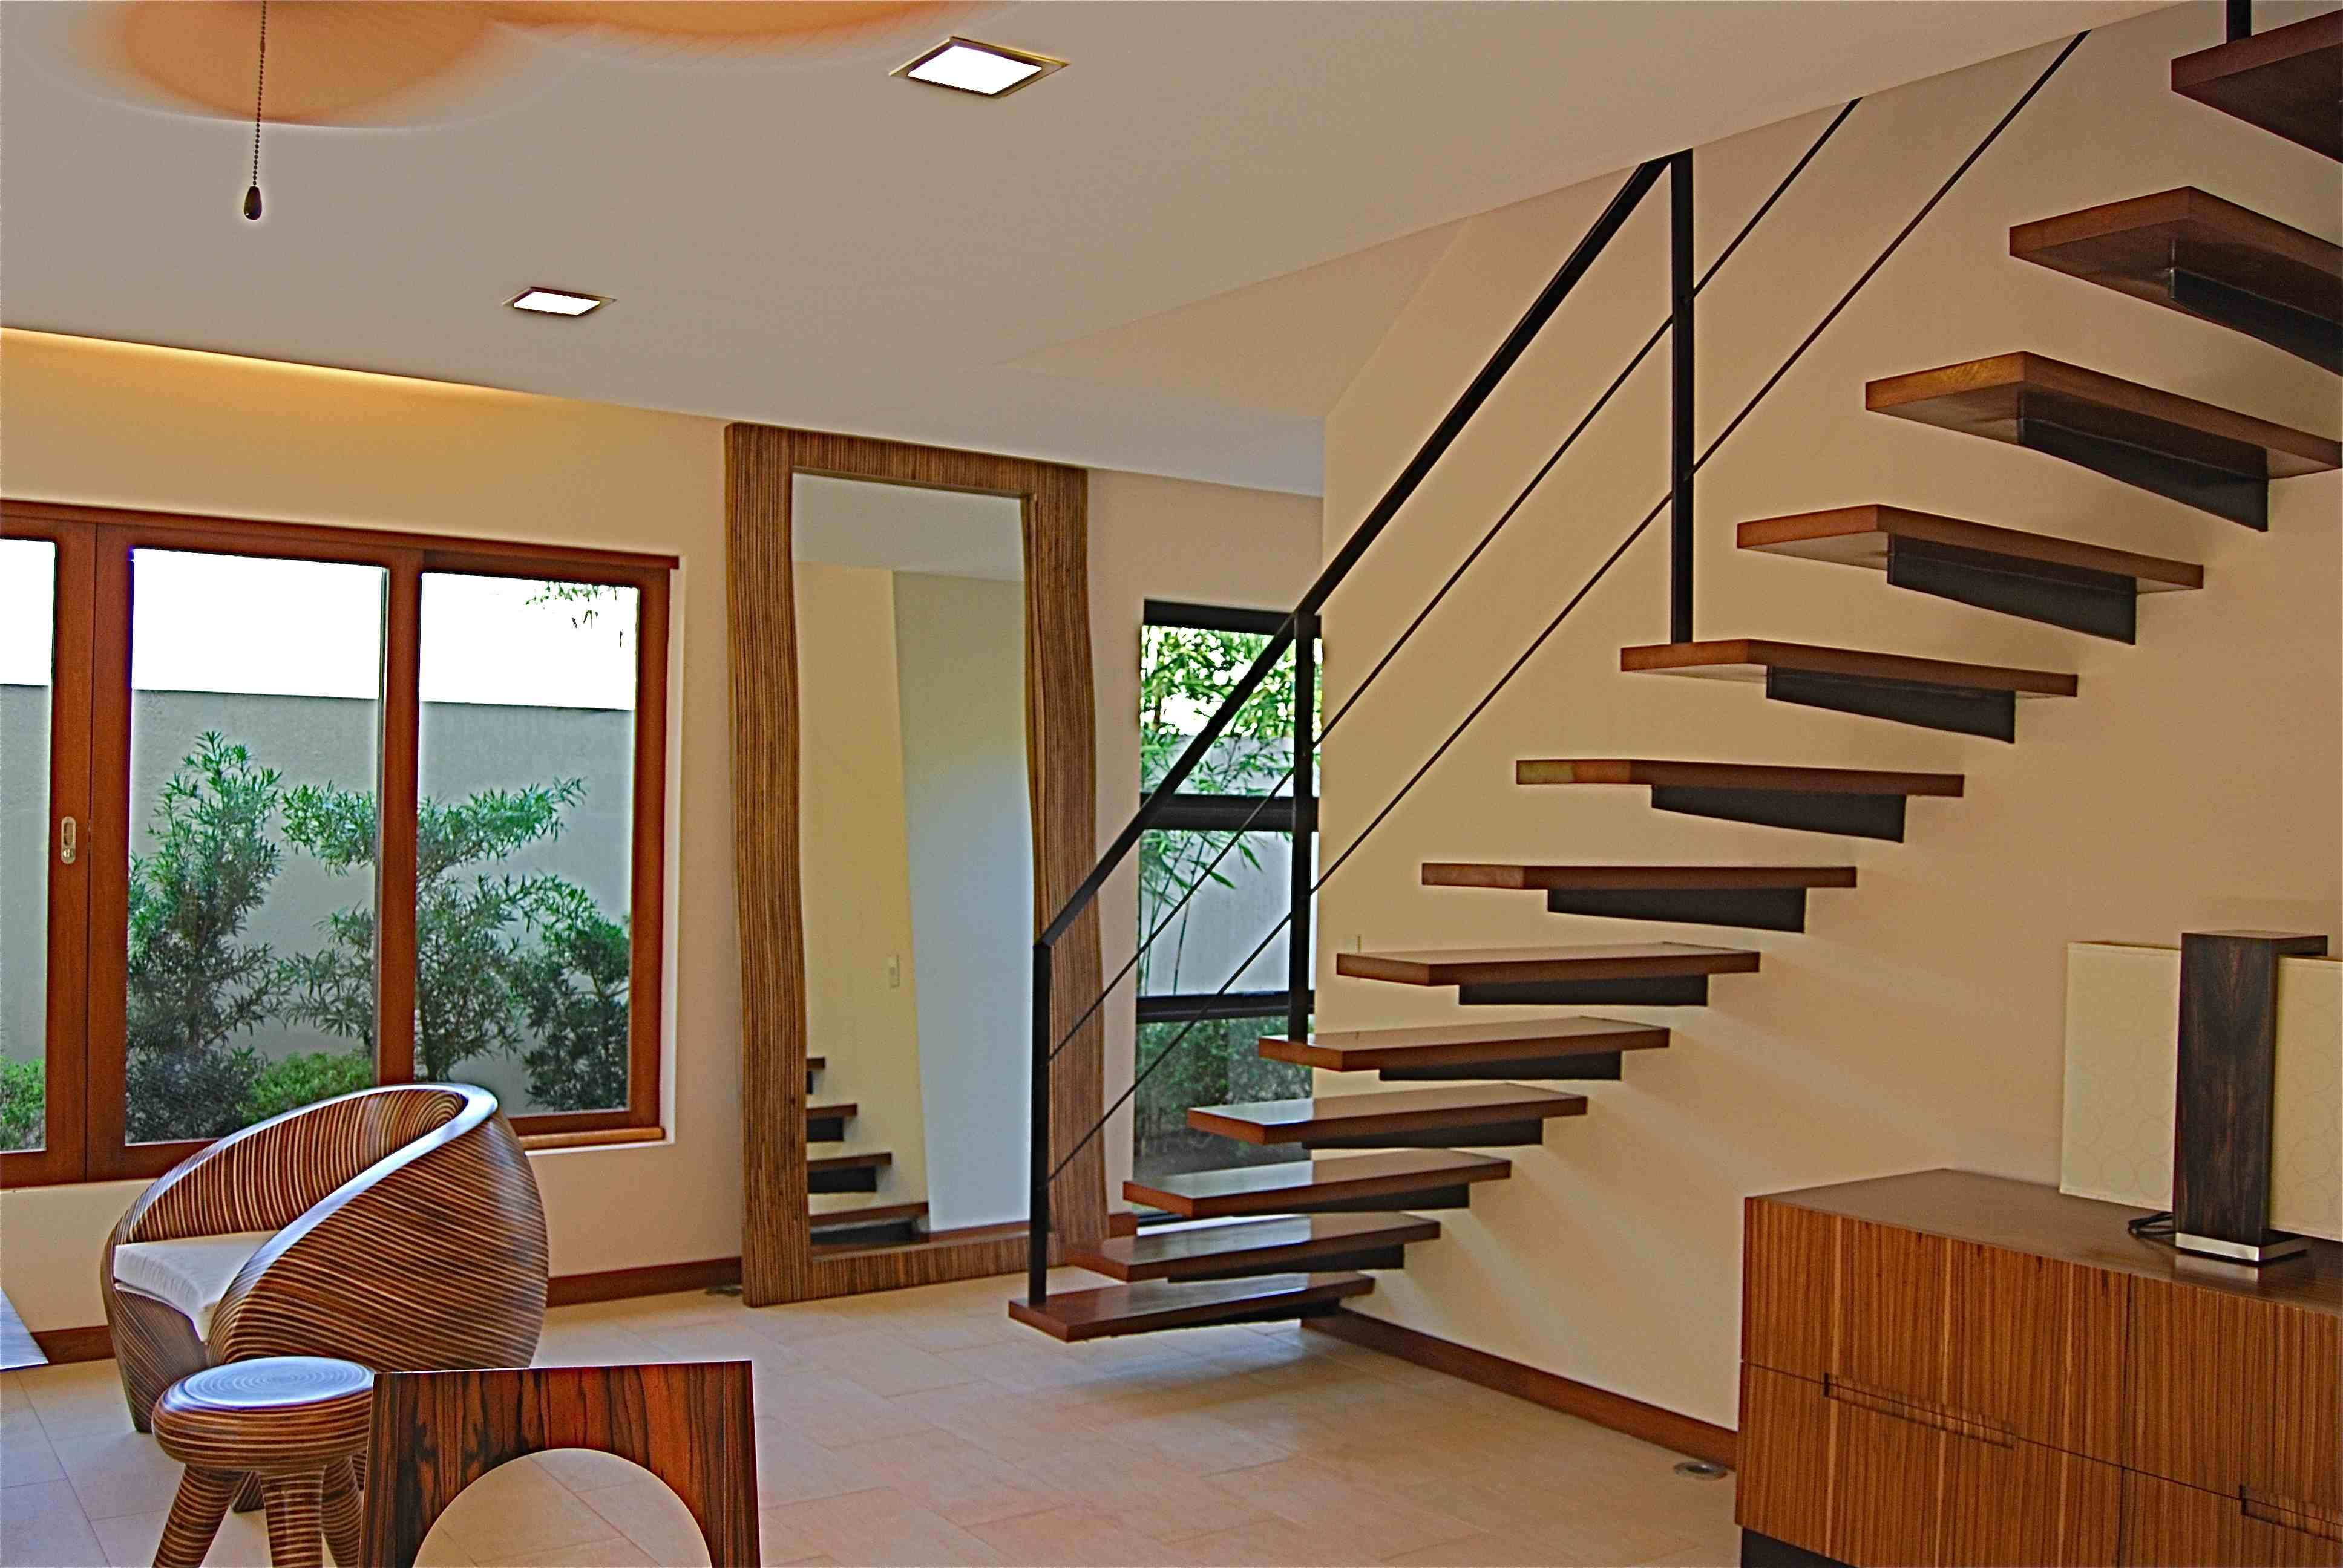 Floating Stairs Modern Handrail Simple House Interior Design